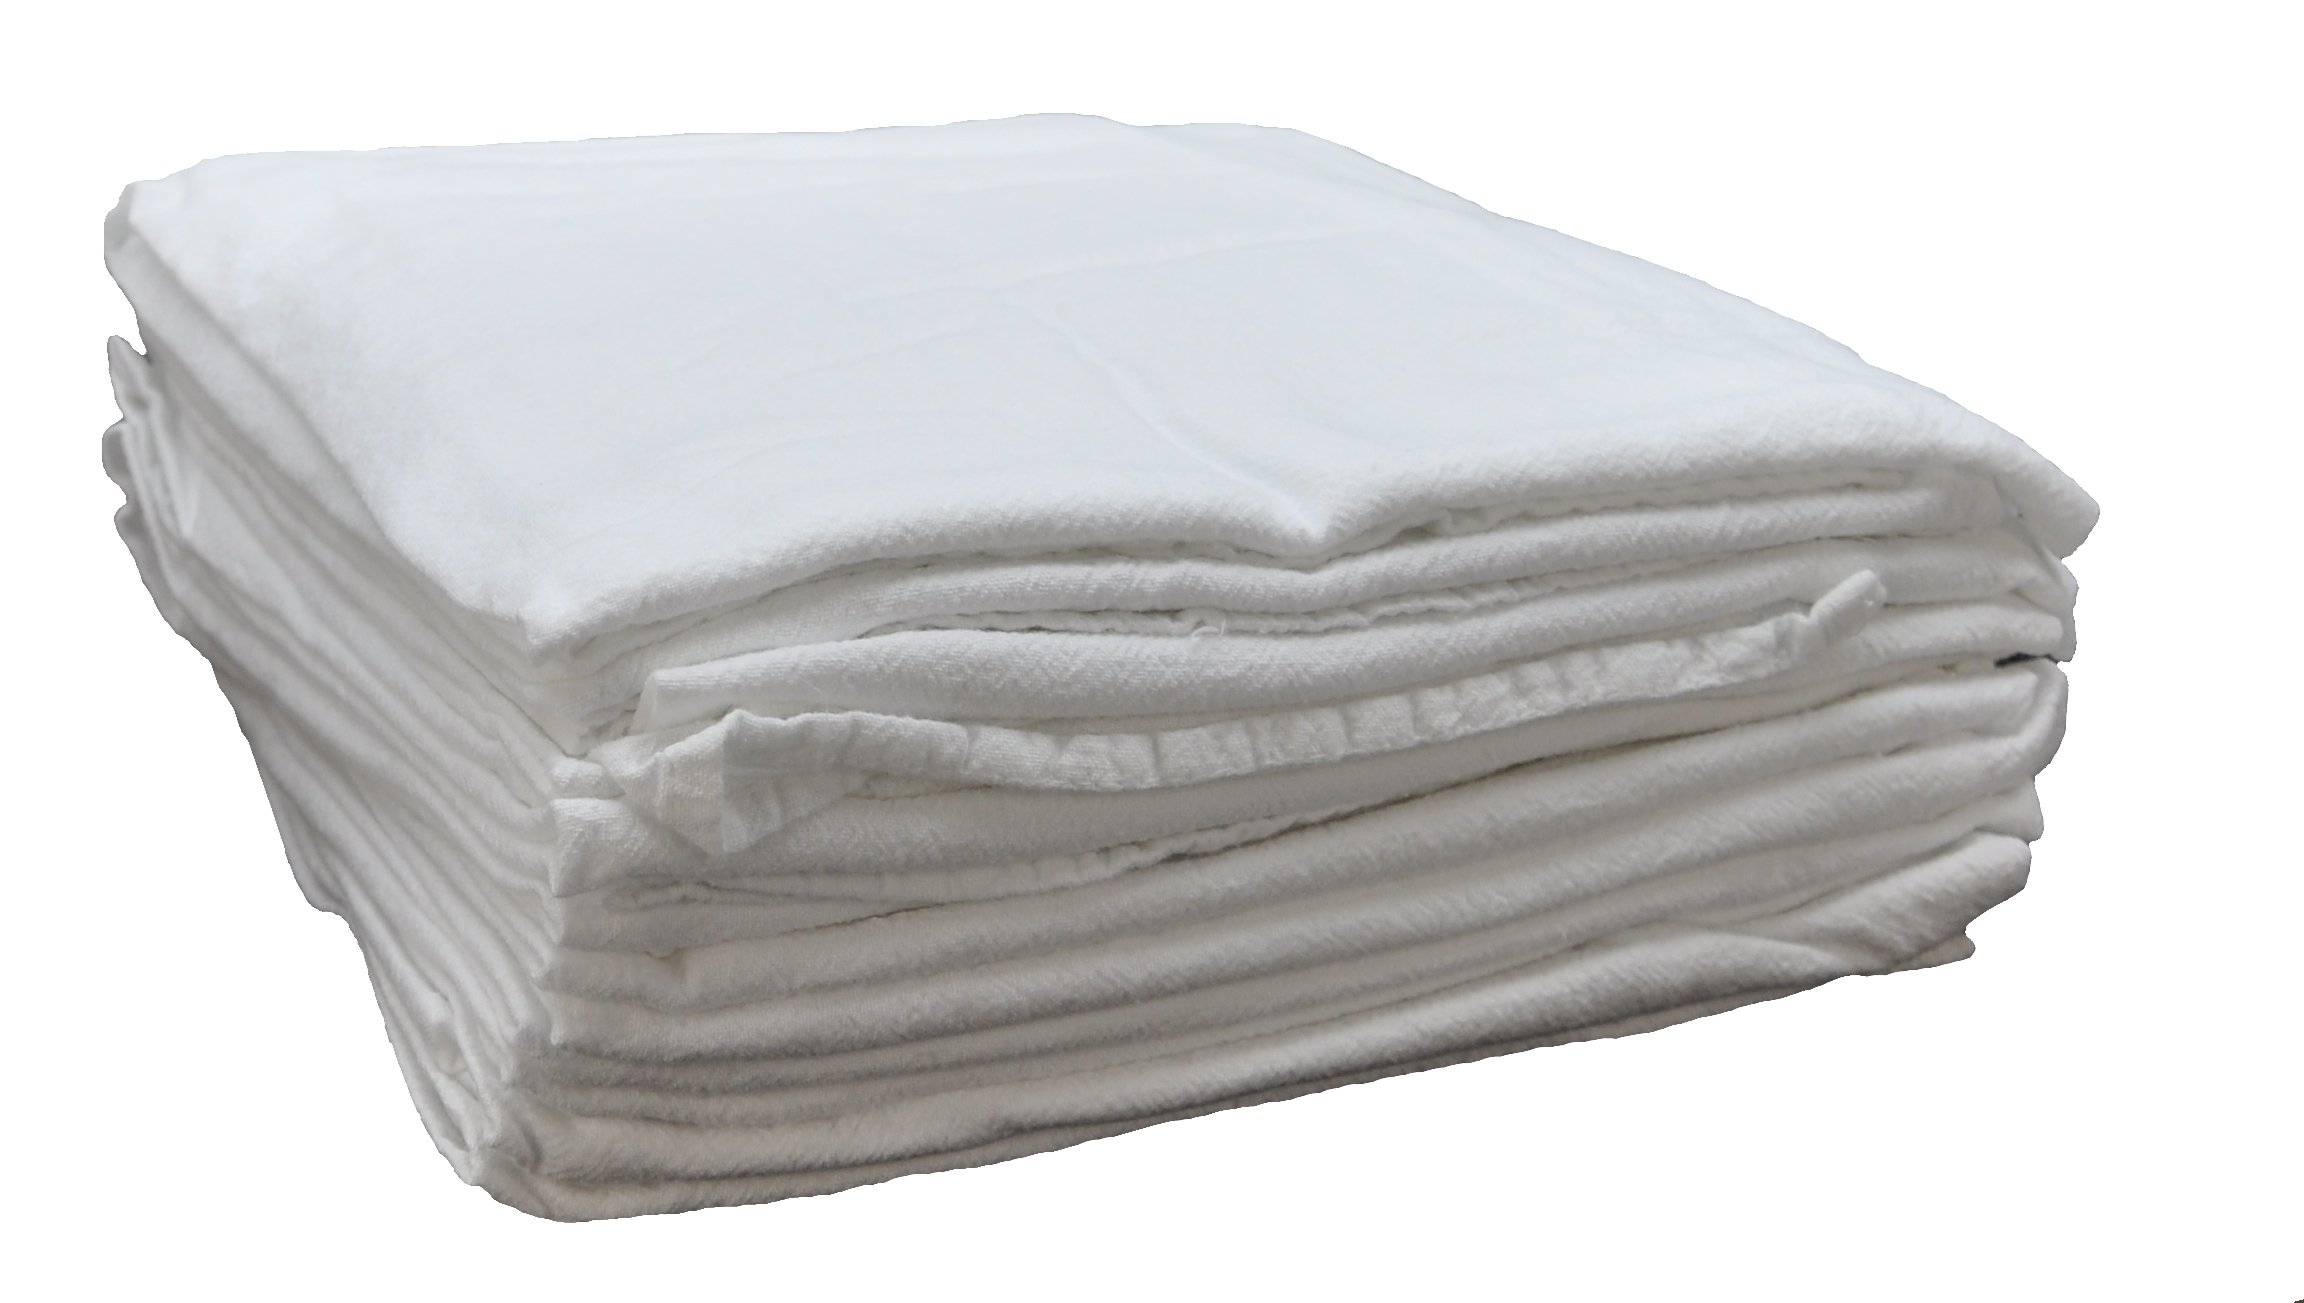 Nouvelle Legende Cotton Flour Sack Towels Commercial Grade 28in X 29in (4-Pack)